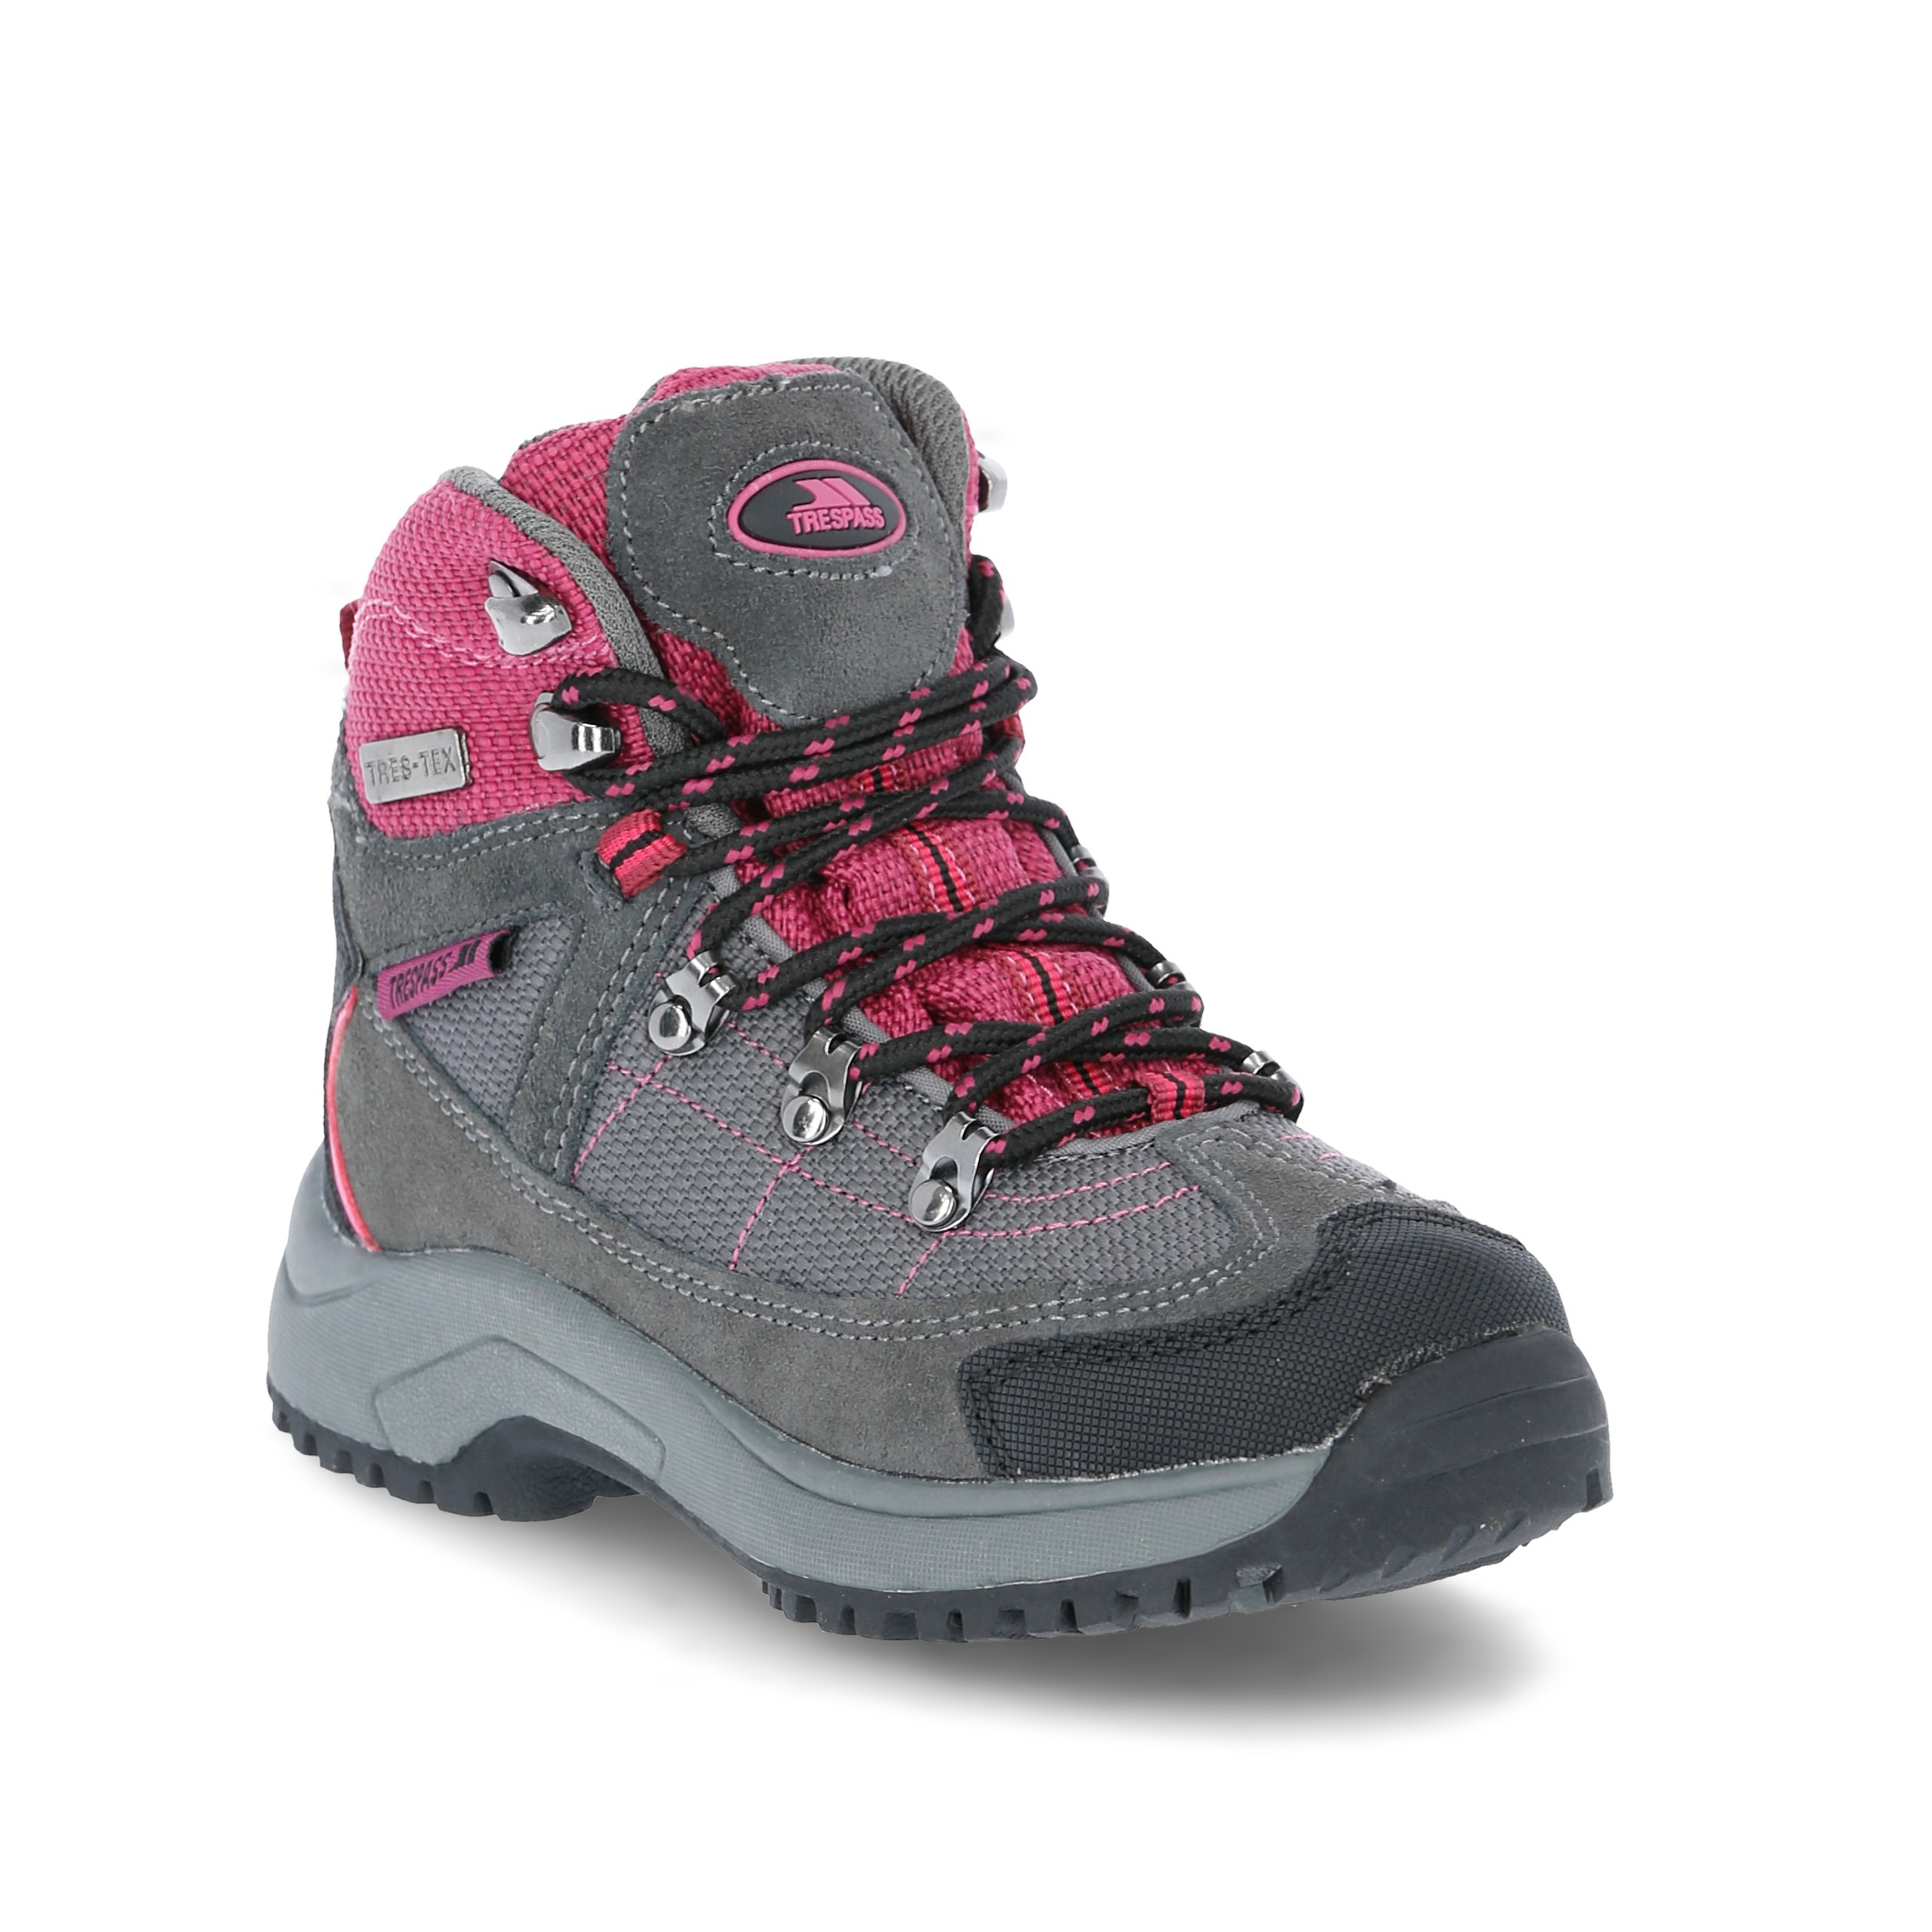 00b8b234760d0 Details about Trespass Laurel Girls Waterproof Walking Boots Breathable  Ankle Hiking Shoes